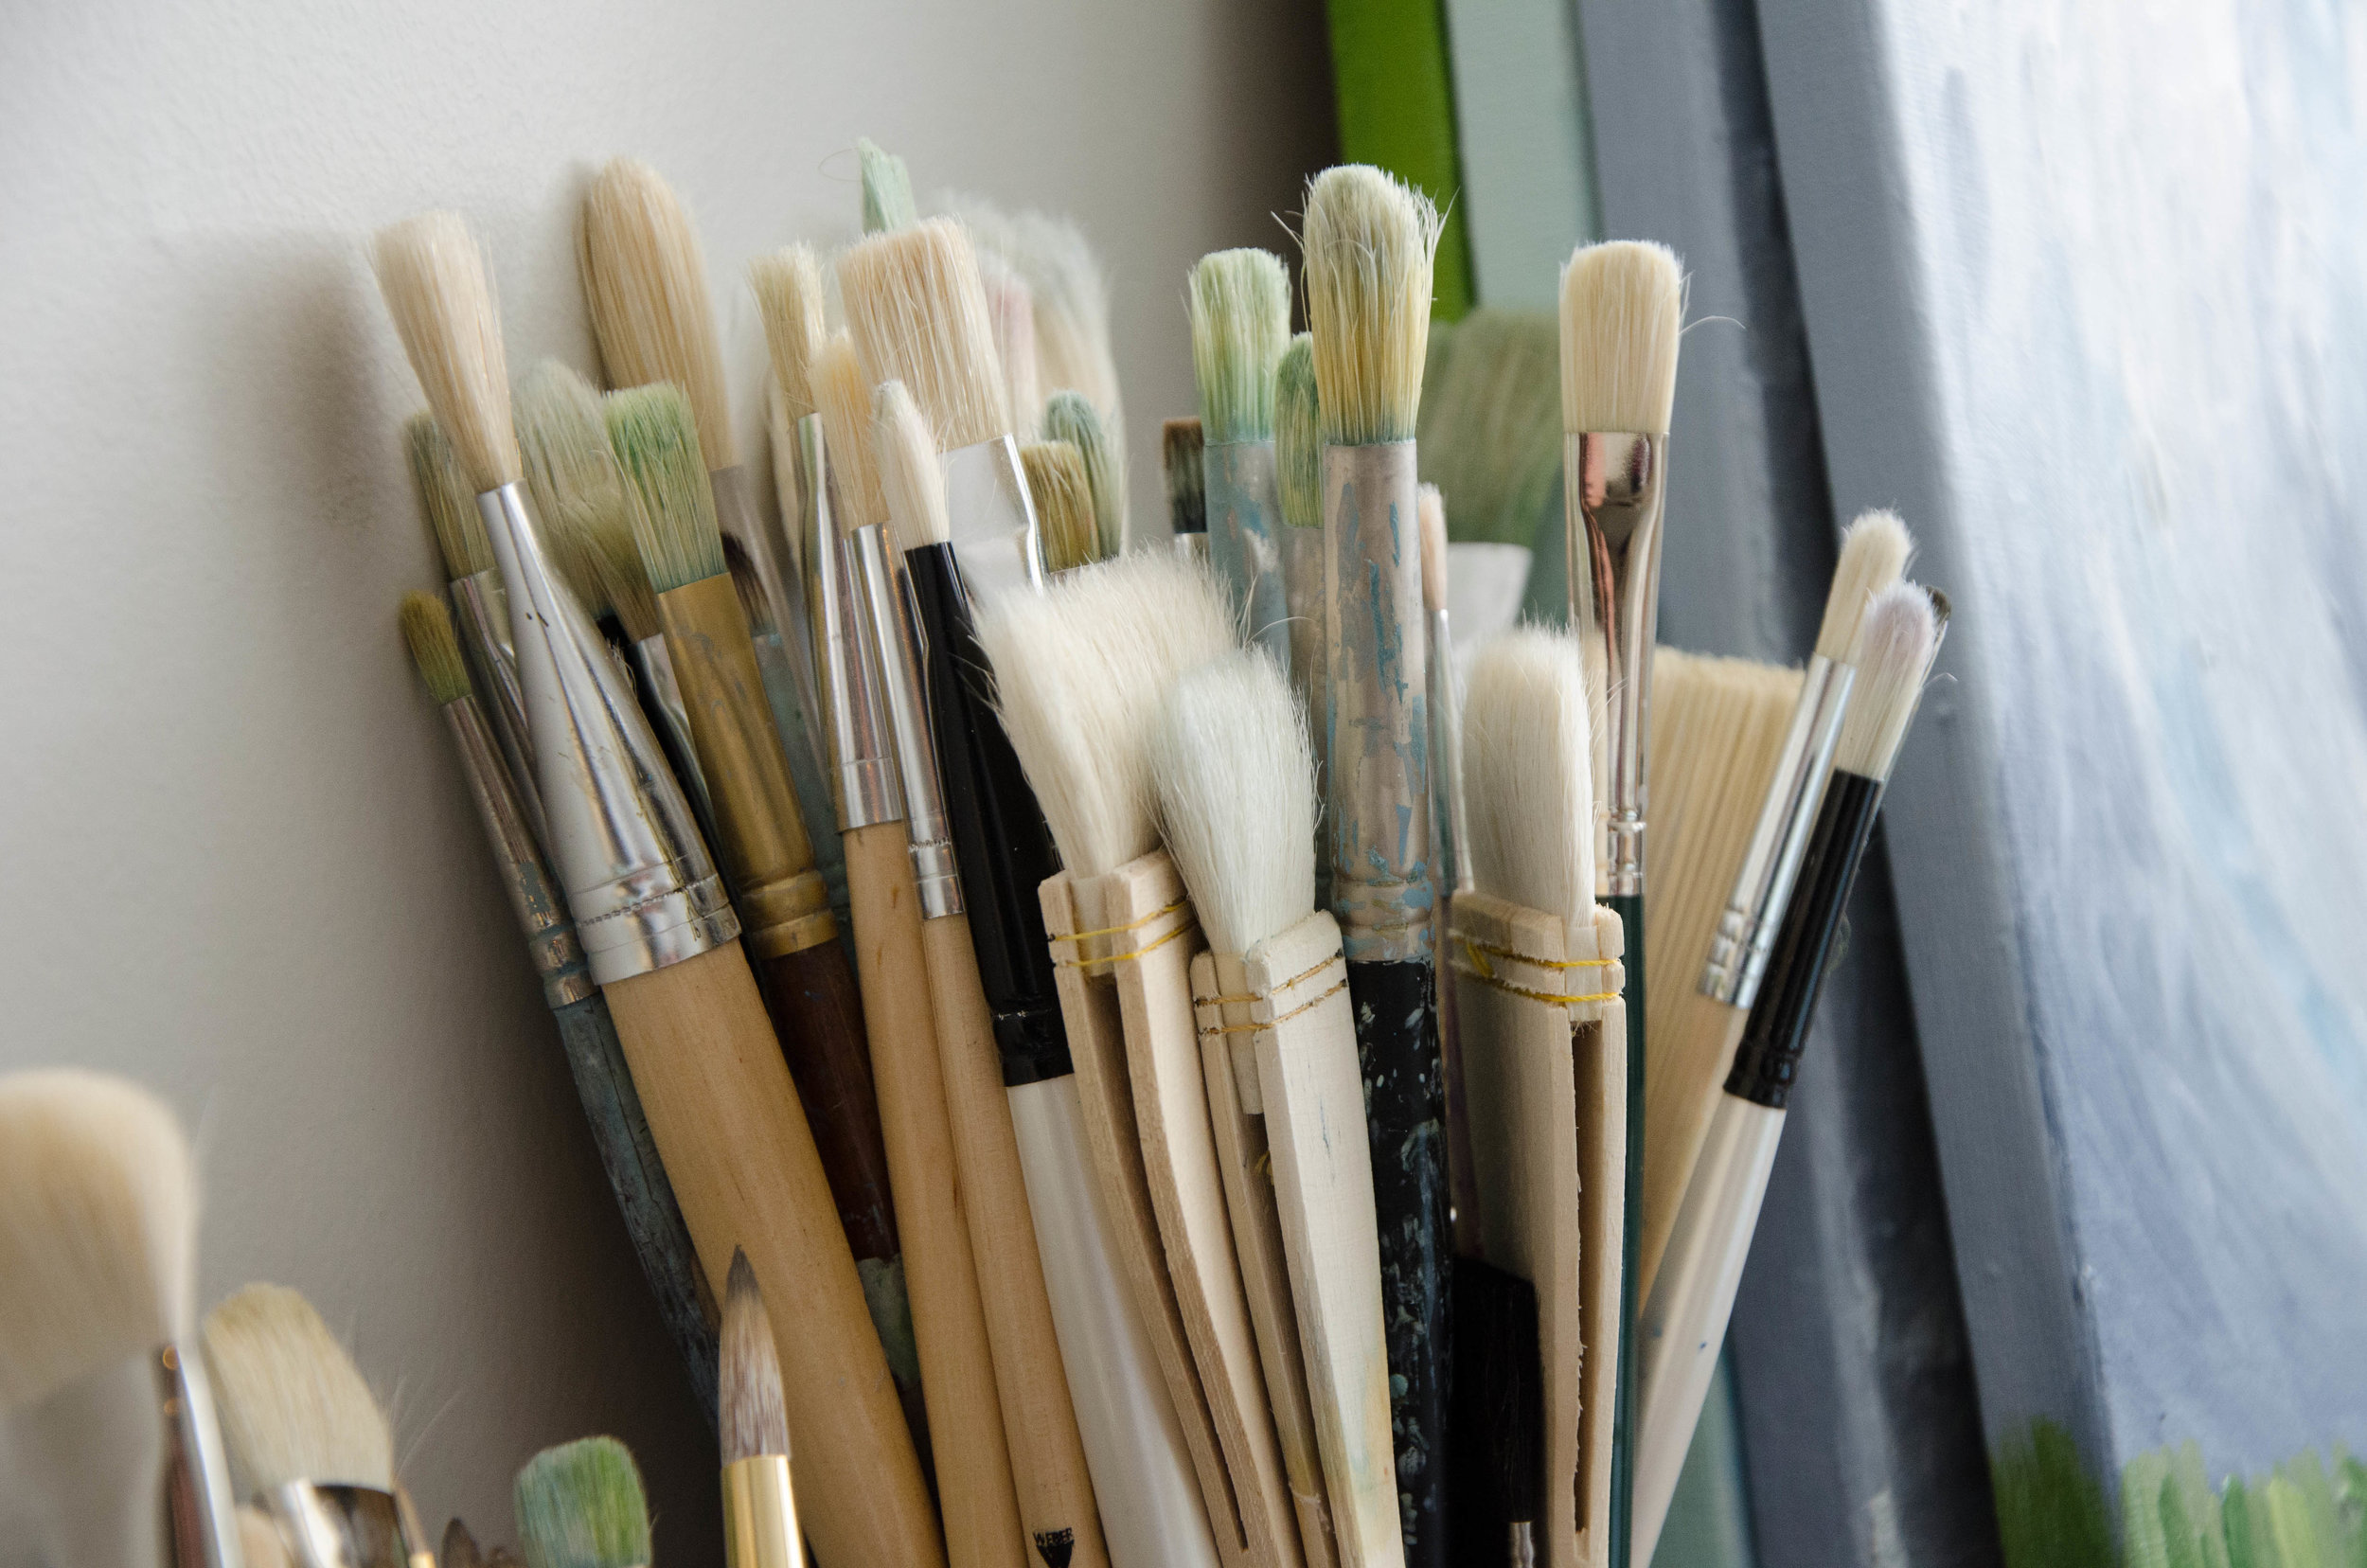 marysia-champ-art-studio-process-supplies-paint-brushes-canvas